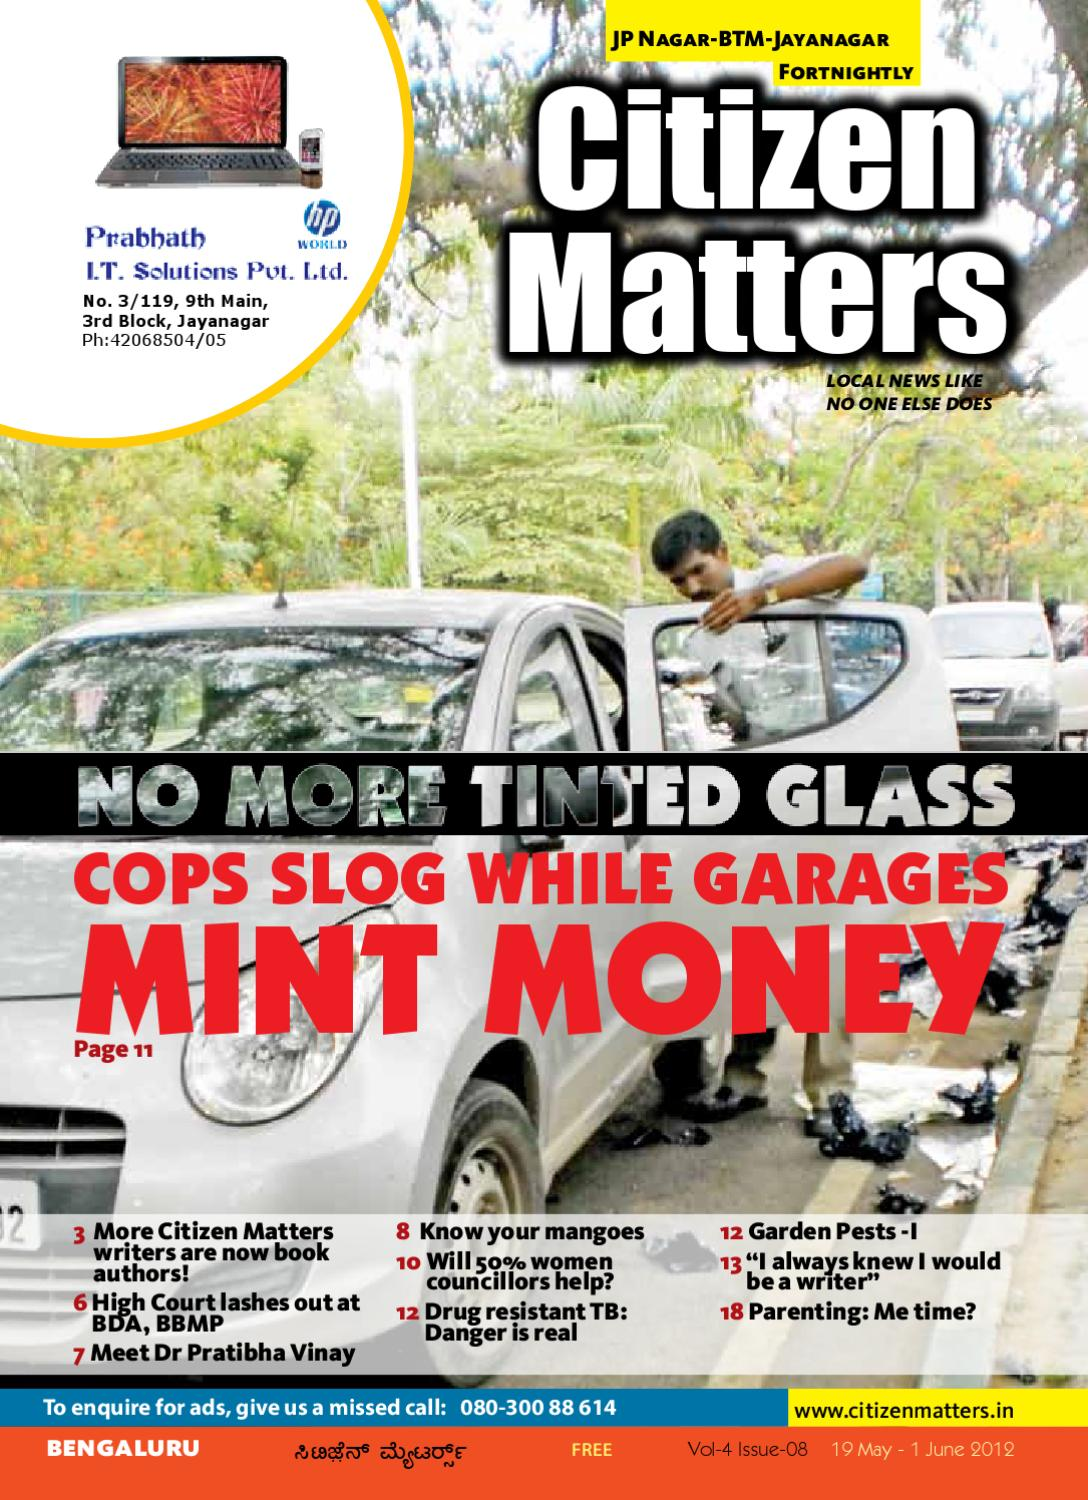 28d12198d citizen matters 19may2012 jpnagar edition by Oorvani Media - issuu